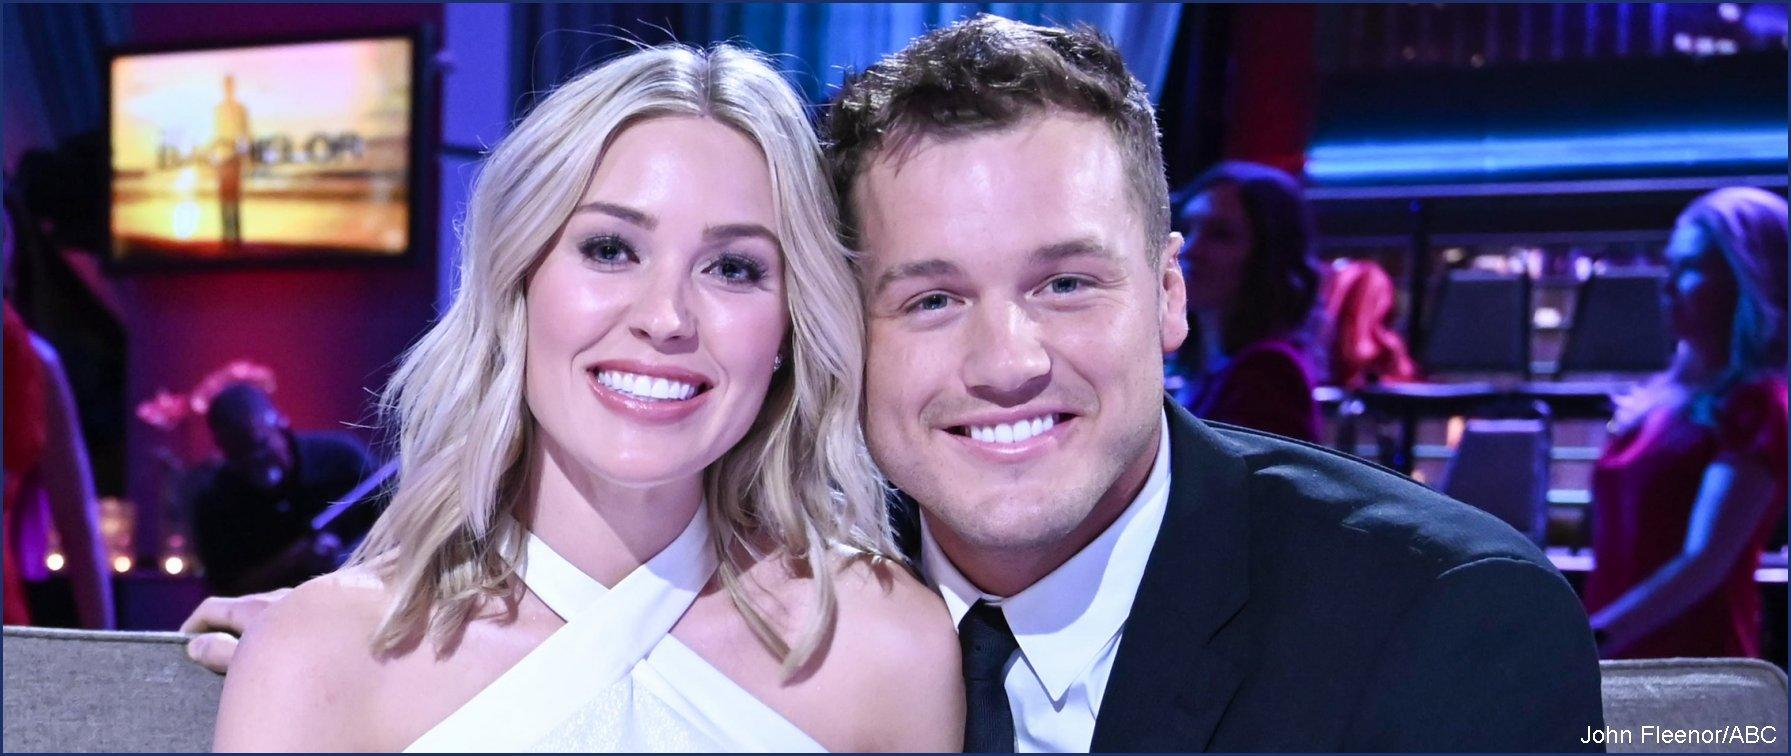 Cassie Randolph Reportedly Attempted To End Things With Colton Underwood A 'Few Times' Before Actual Breakup!